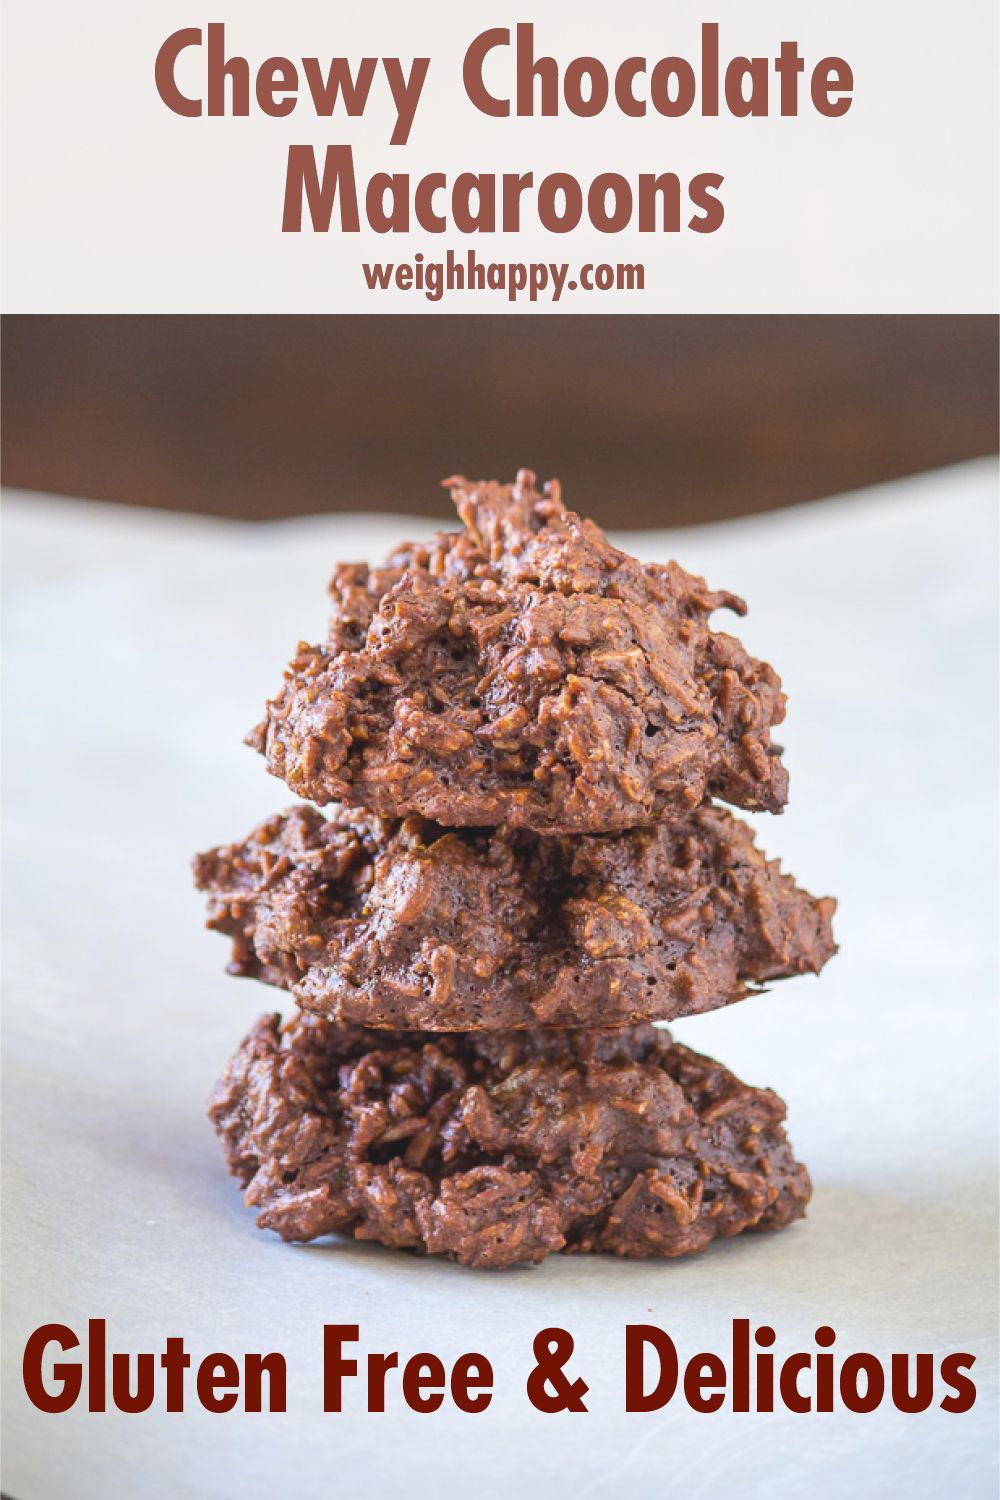 Chewy chocolate macaroons gluten free and delicious to